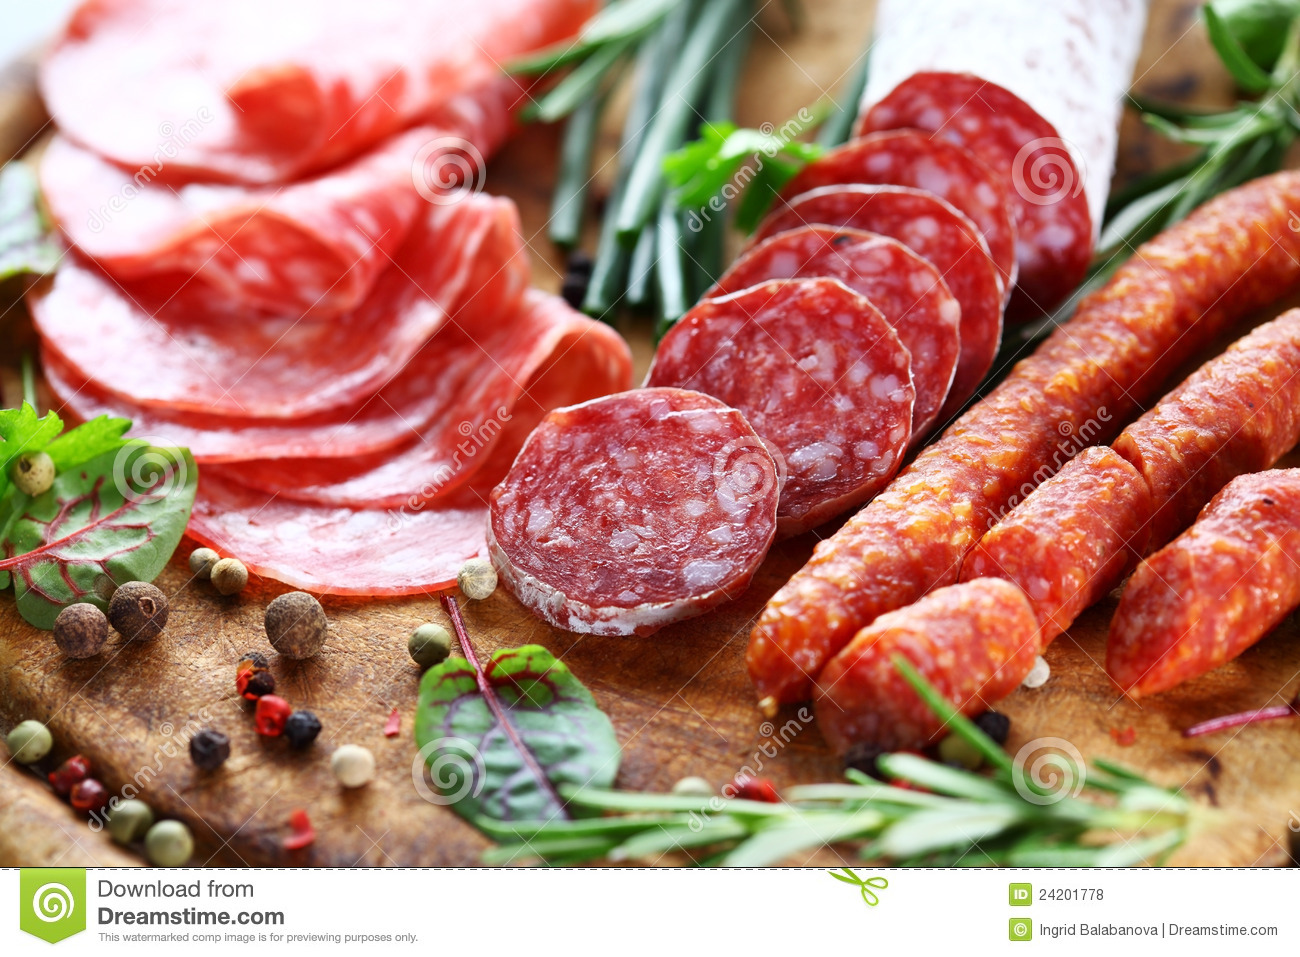 Different herbs royalty free stock image image 16265346 - Different Herbs Royalty Free Stock Image Image 16265346 Italian Ham And Salami With Herbs Royalty Download